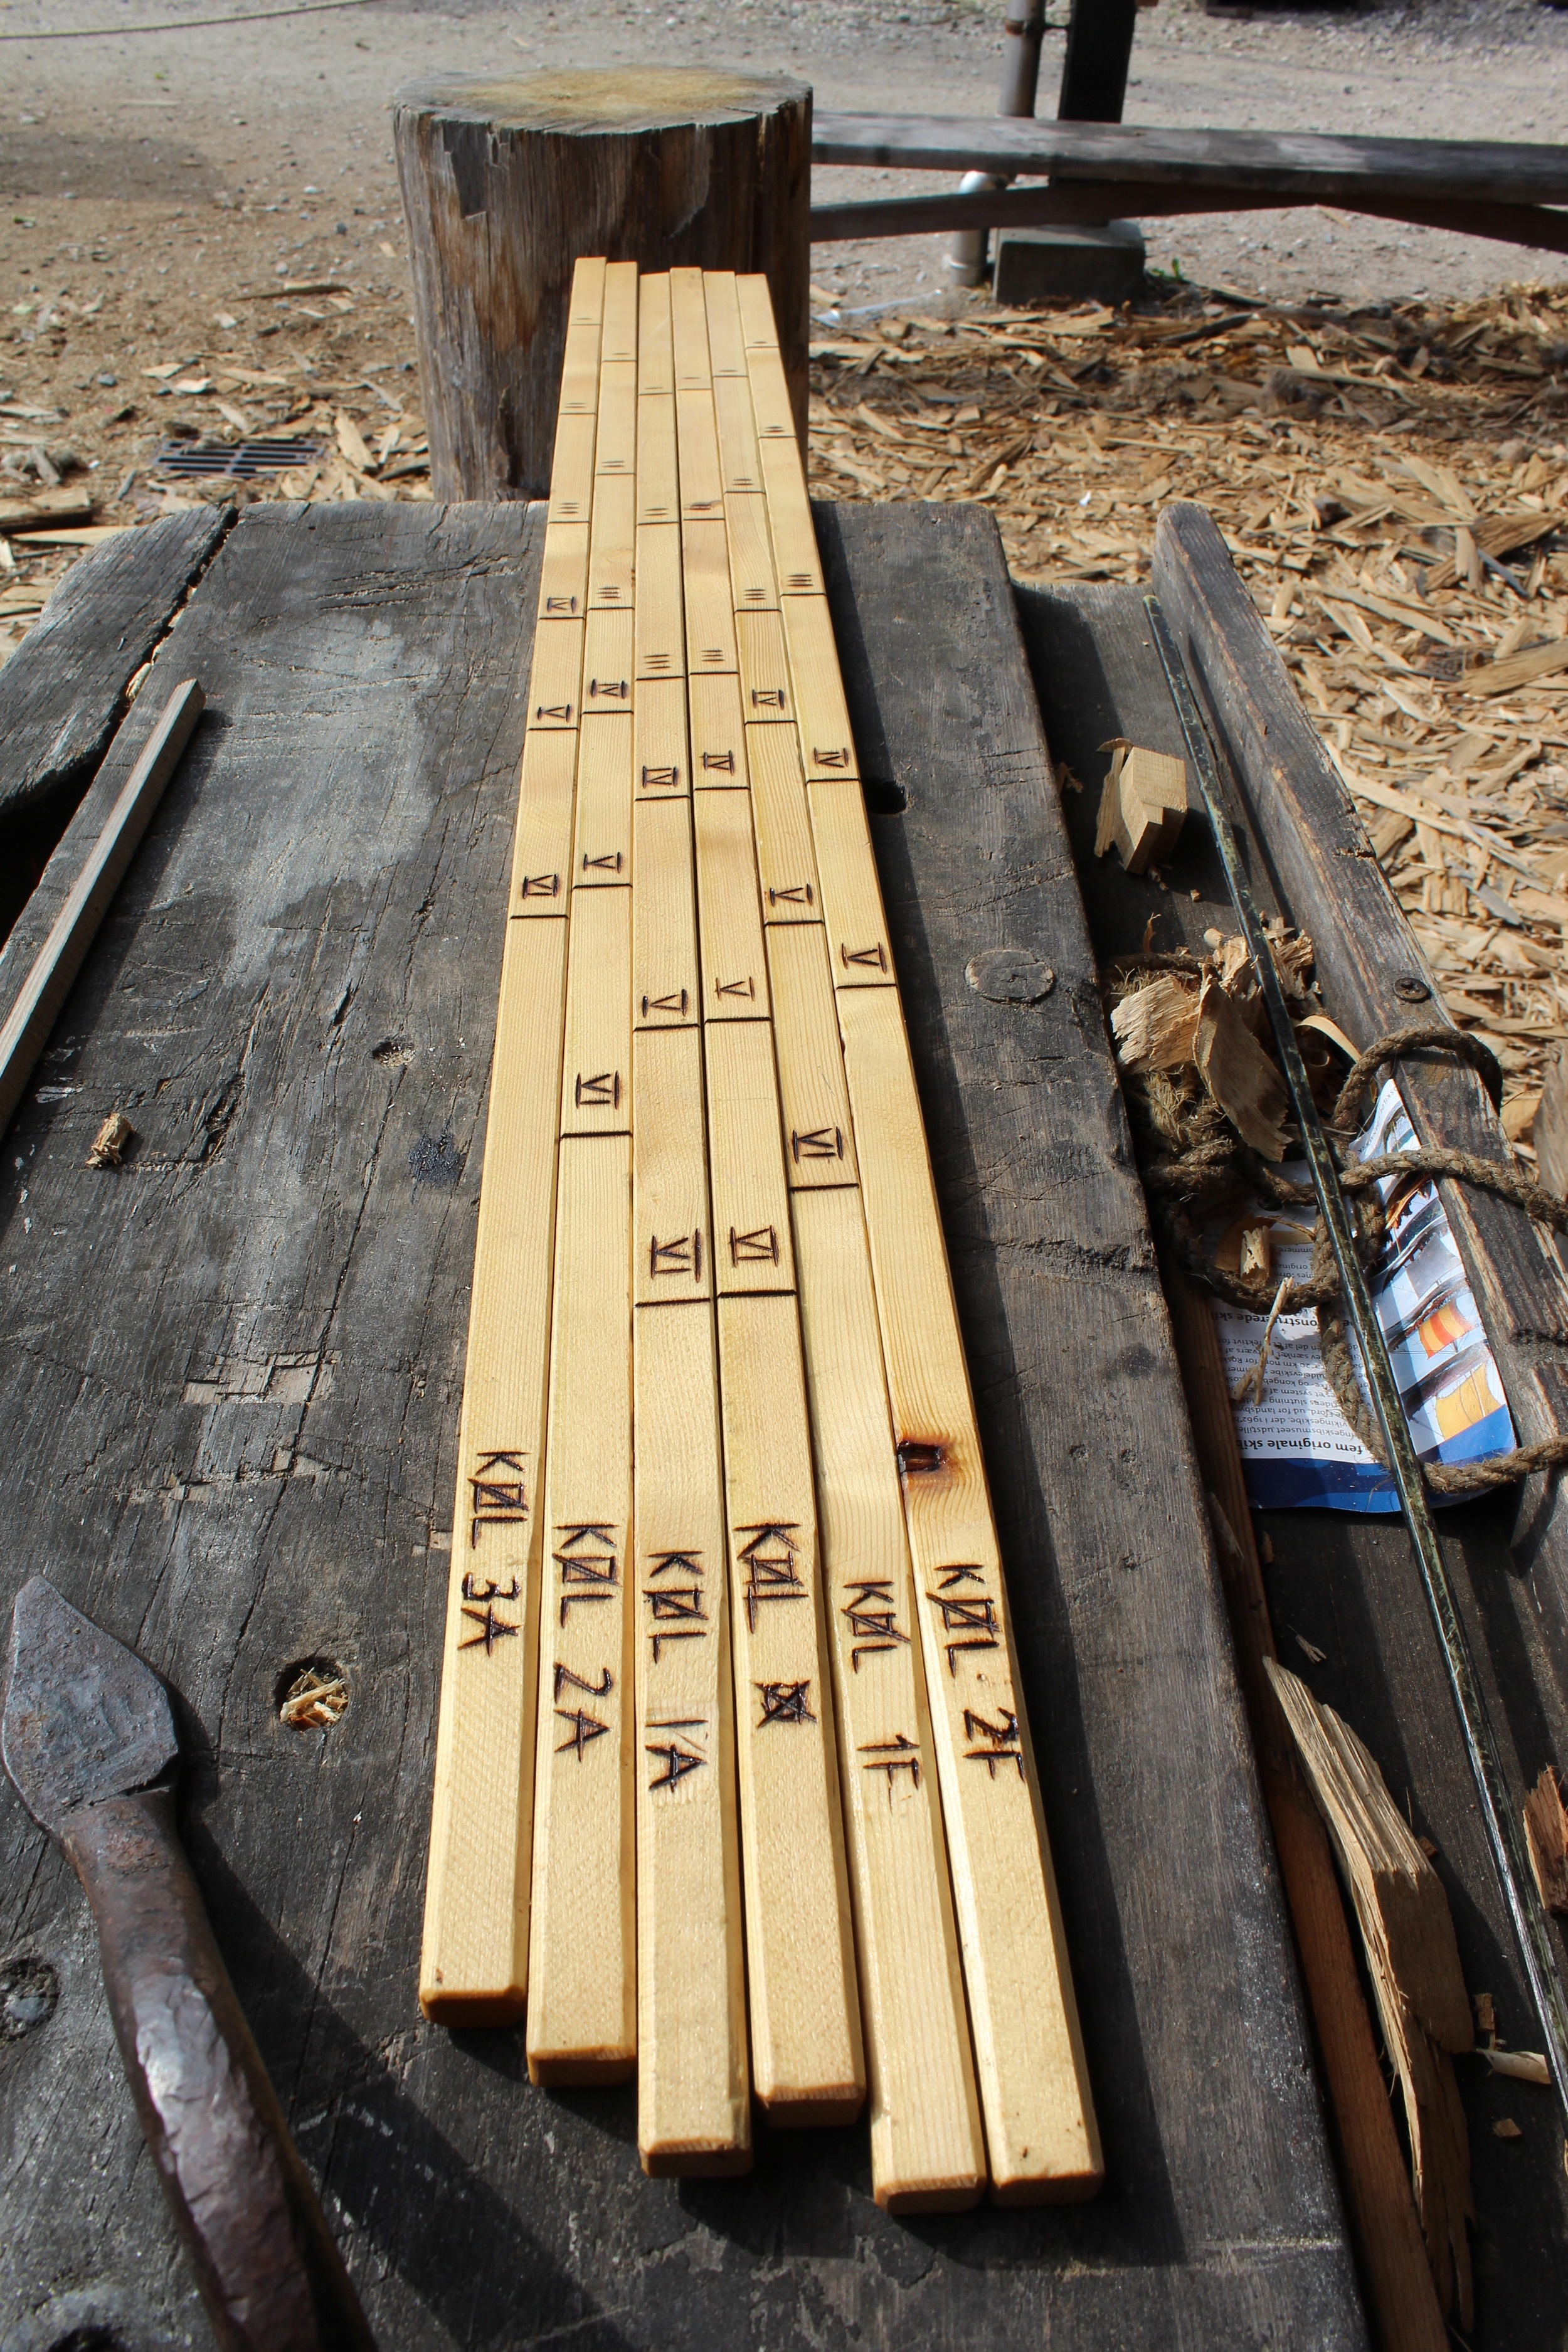 Tic-sticks for planking a Viking ship with markings for angles in Roman numerical